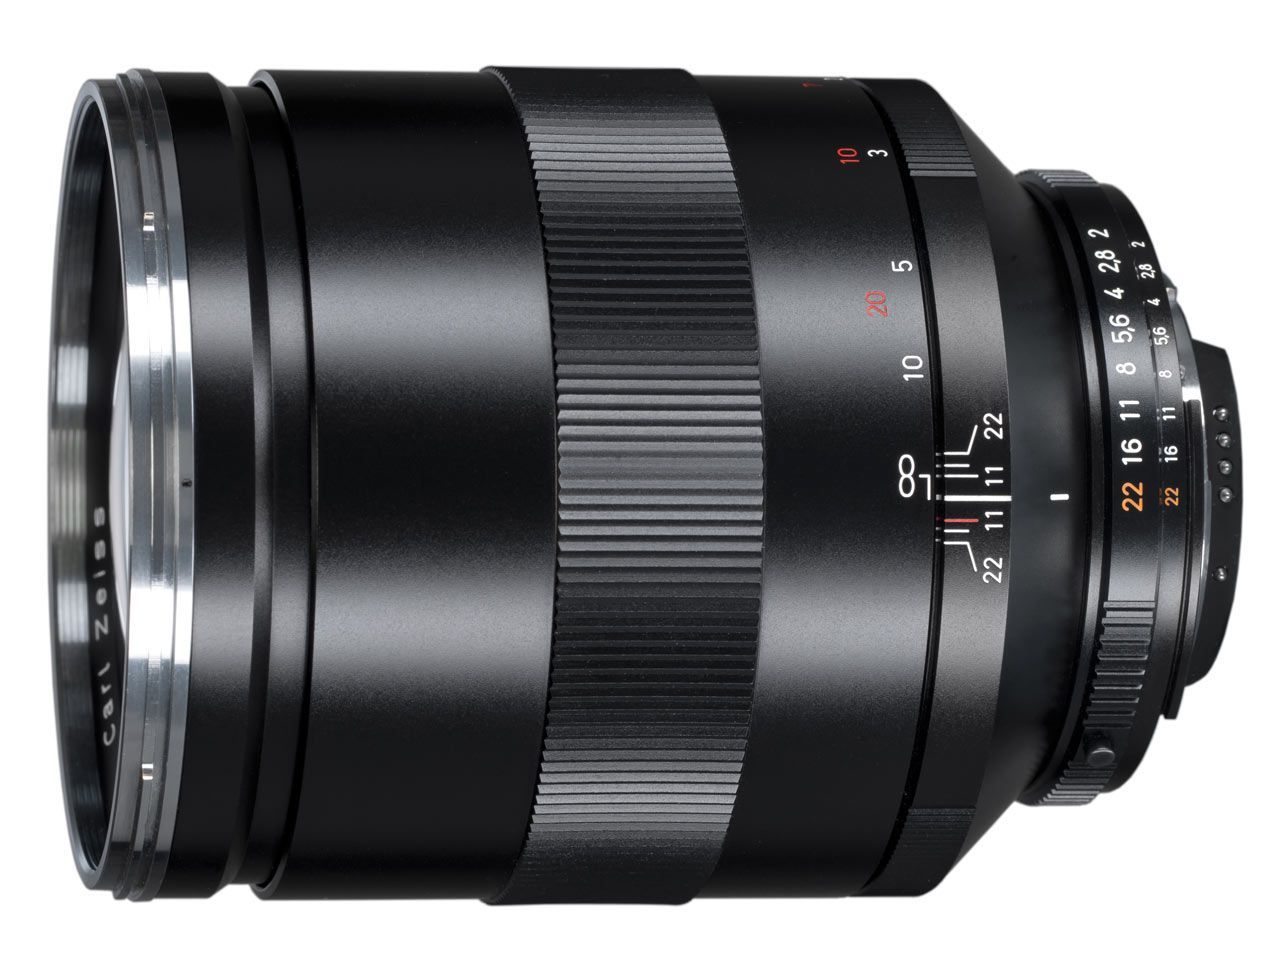 Carl Zeiss Has Announced The Apo Sonnar T 2 X2f 135 Telephoto Lens Which It Will Be Showing At The Photokina Trade Sho Digital Camera Lens Dslr Lenses Zeiss